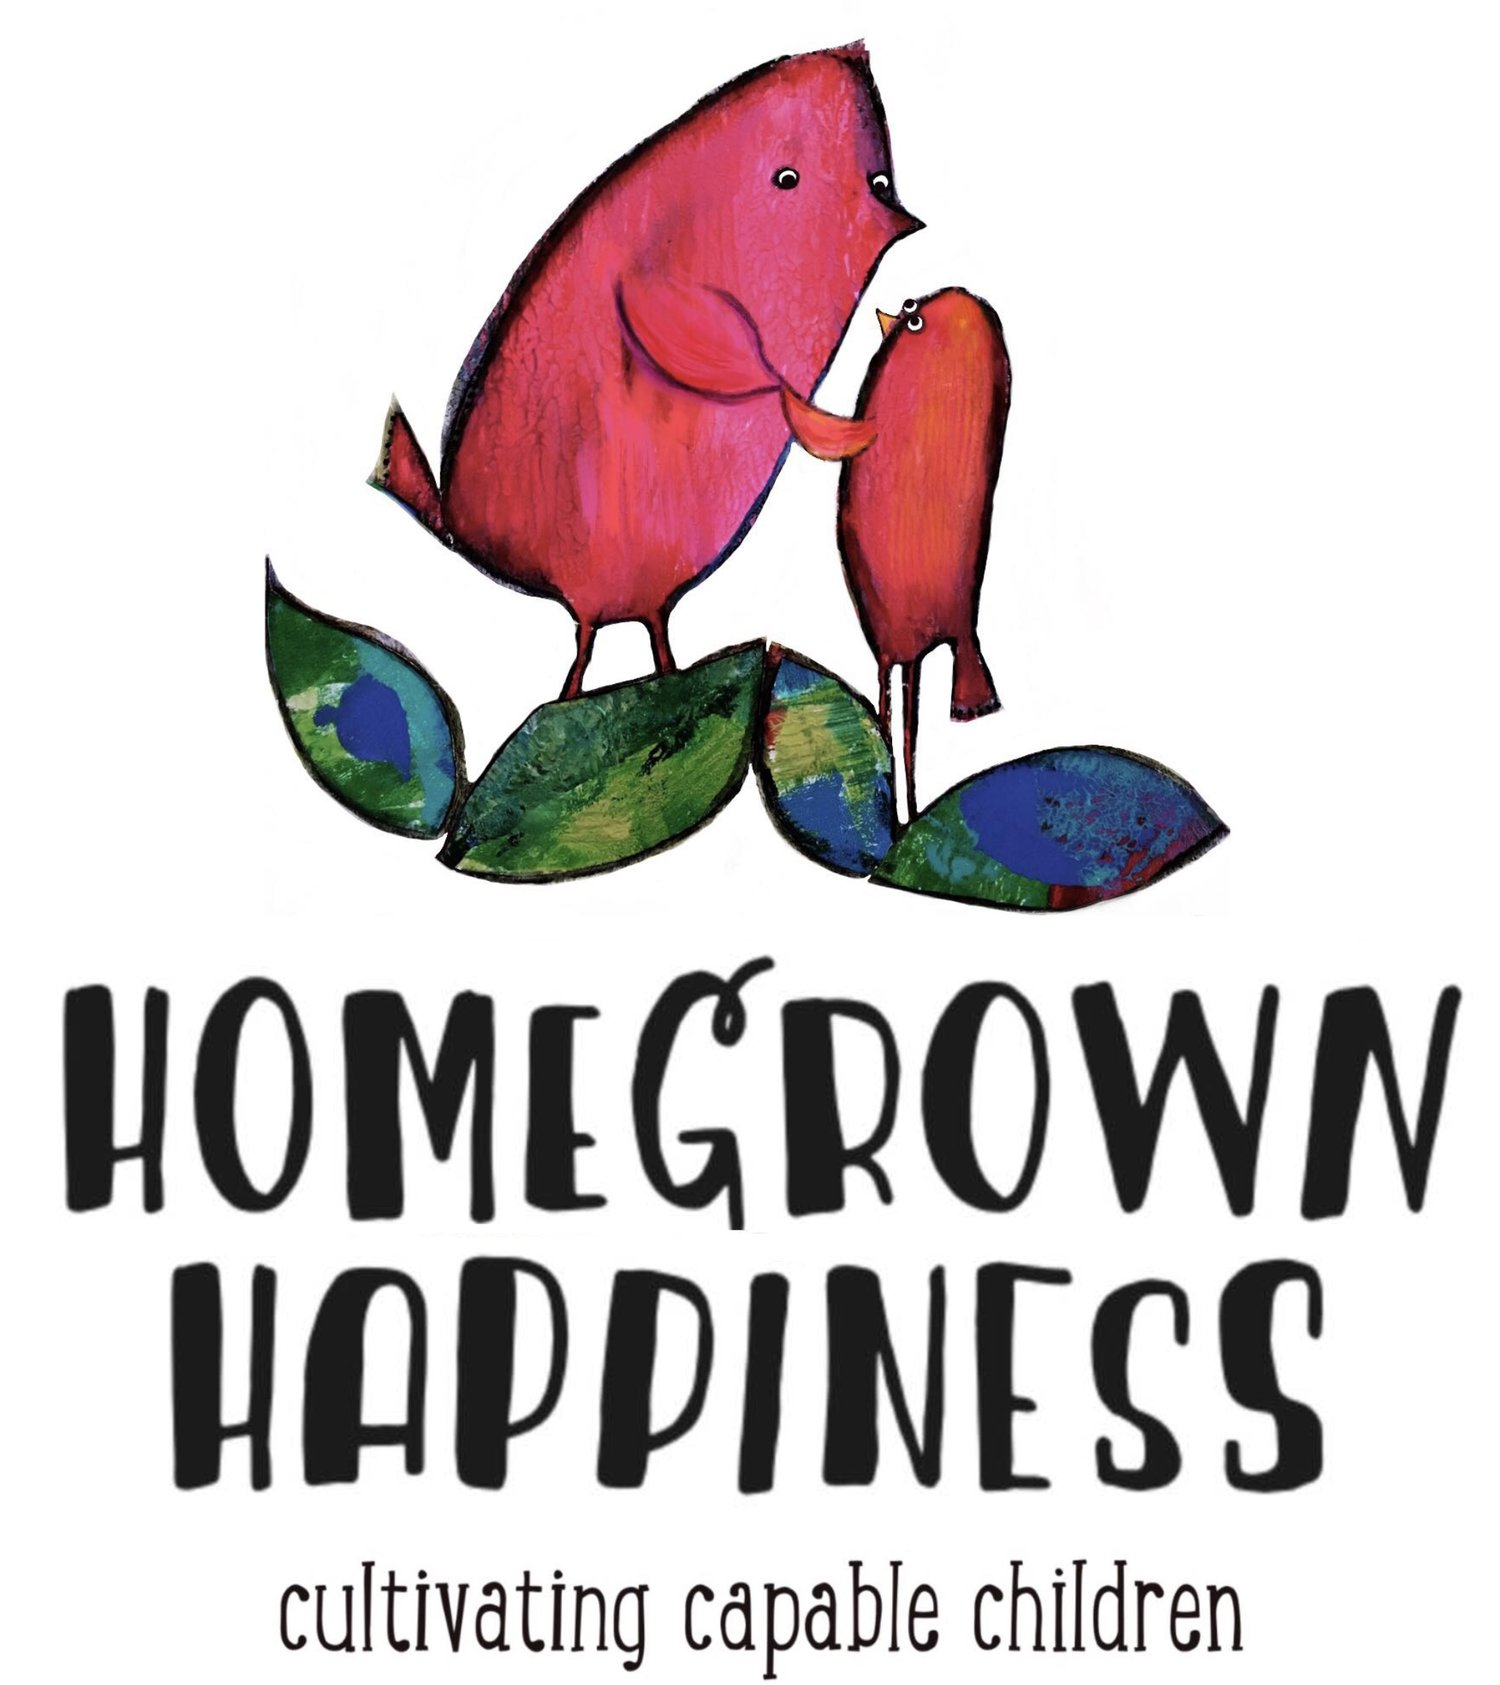 Homegrown Happiness